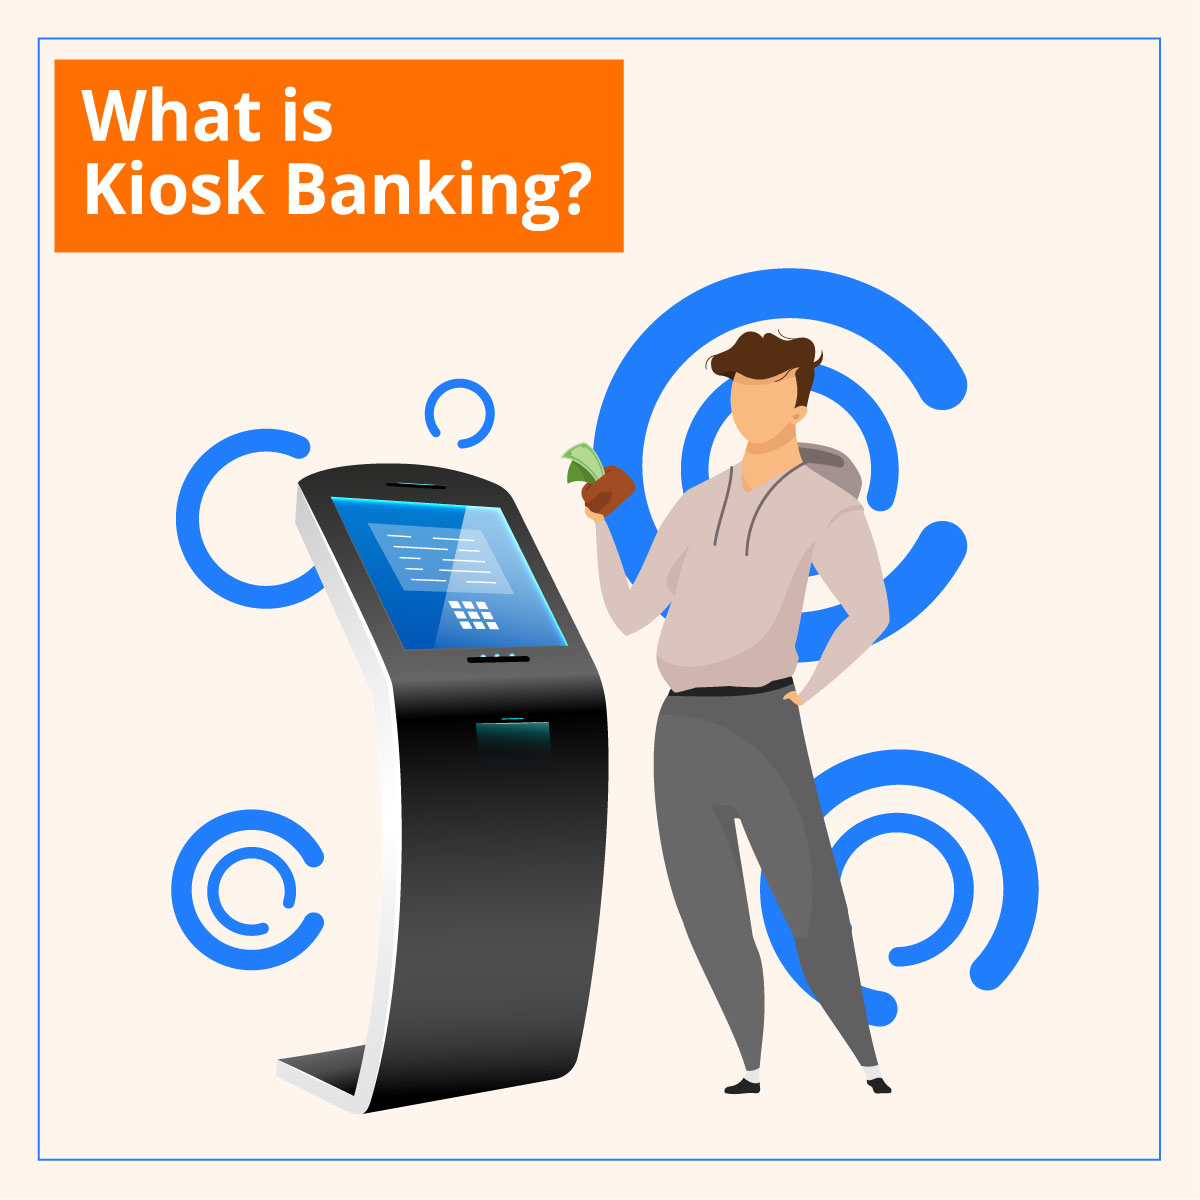 What is Kiosk Banking